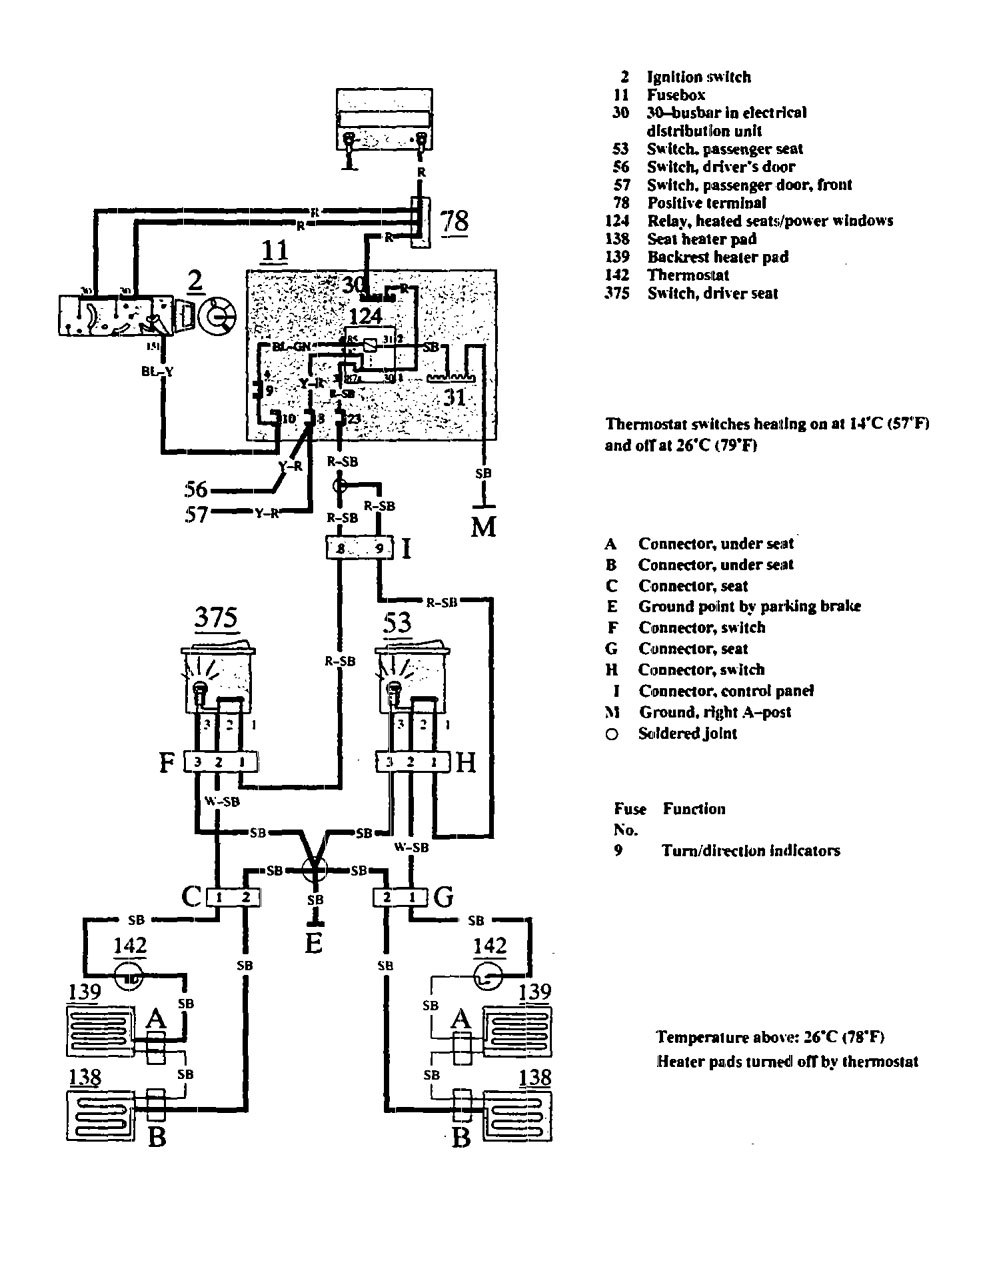 wrg 7679] 2011 saab 9 3 seat heater wiringvolvo 940 \u2013 wiring diagram \u2013 heated seats (part 1)